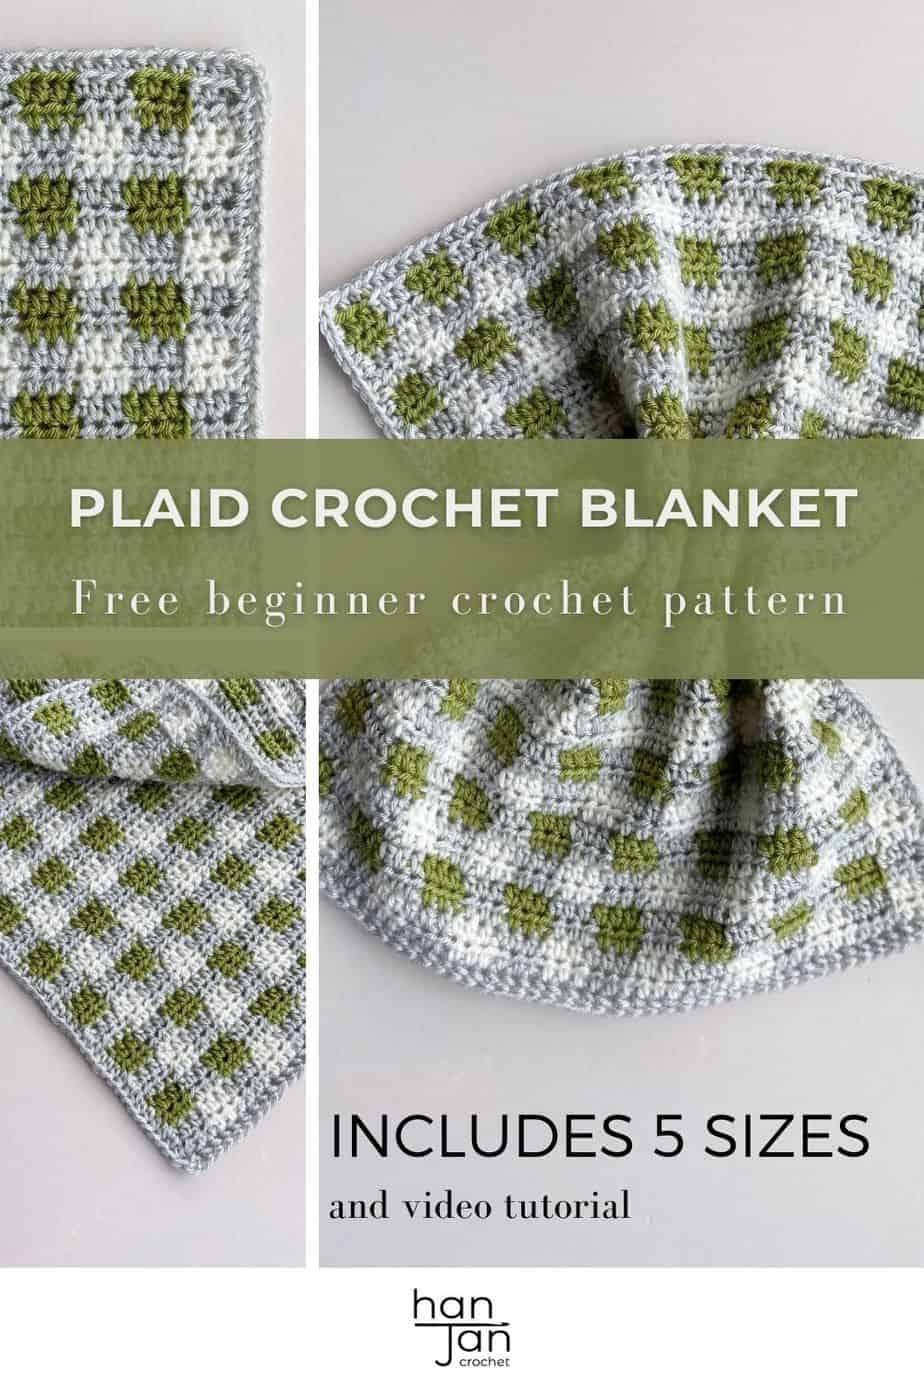 images of plaid crochet baby blanket